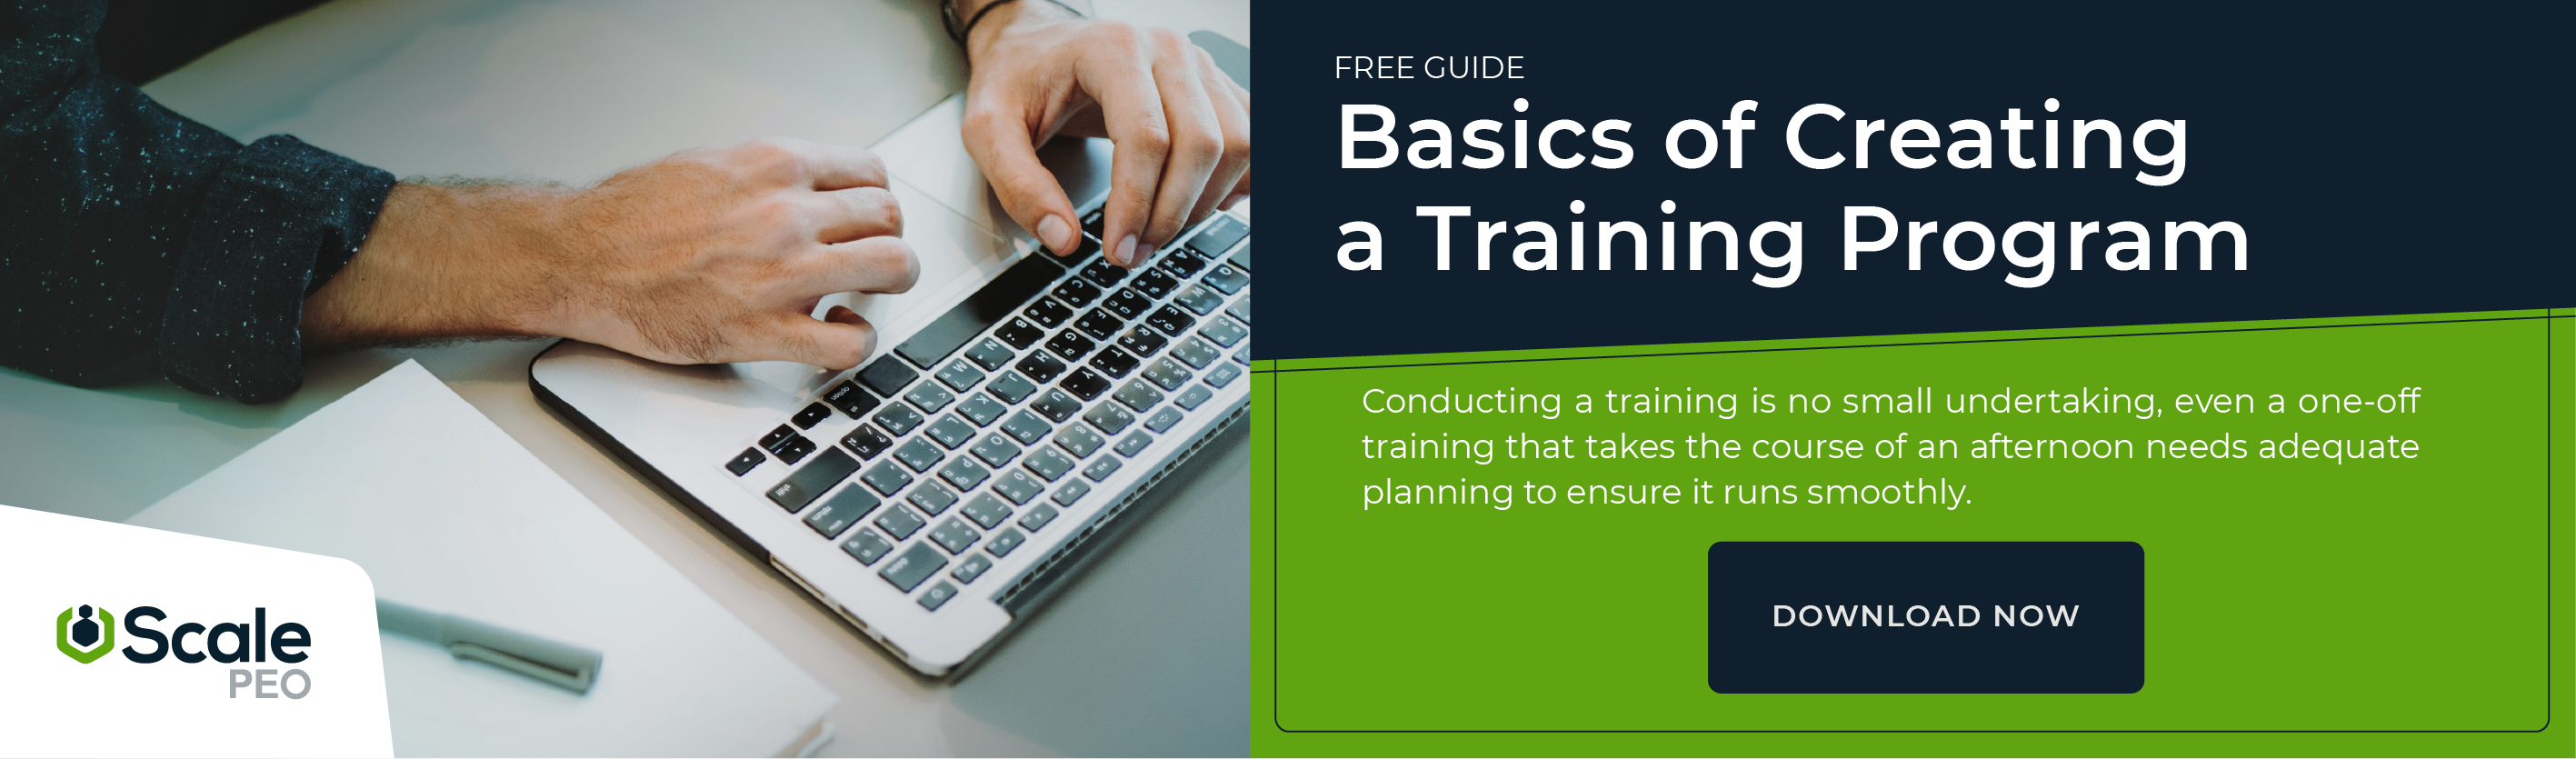 basics of creating a training program guide download